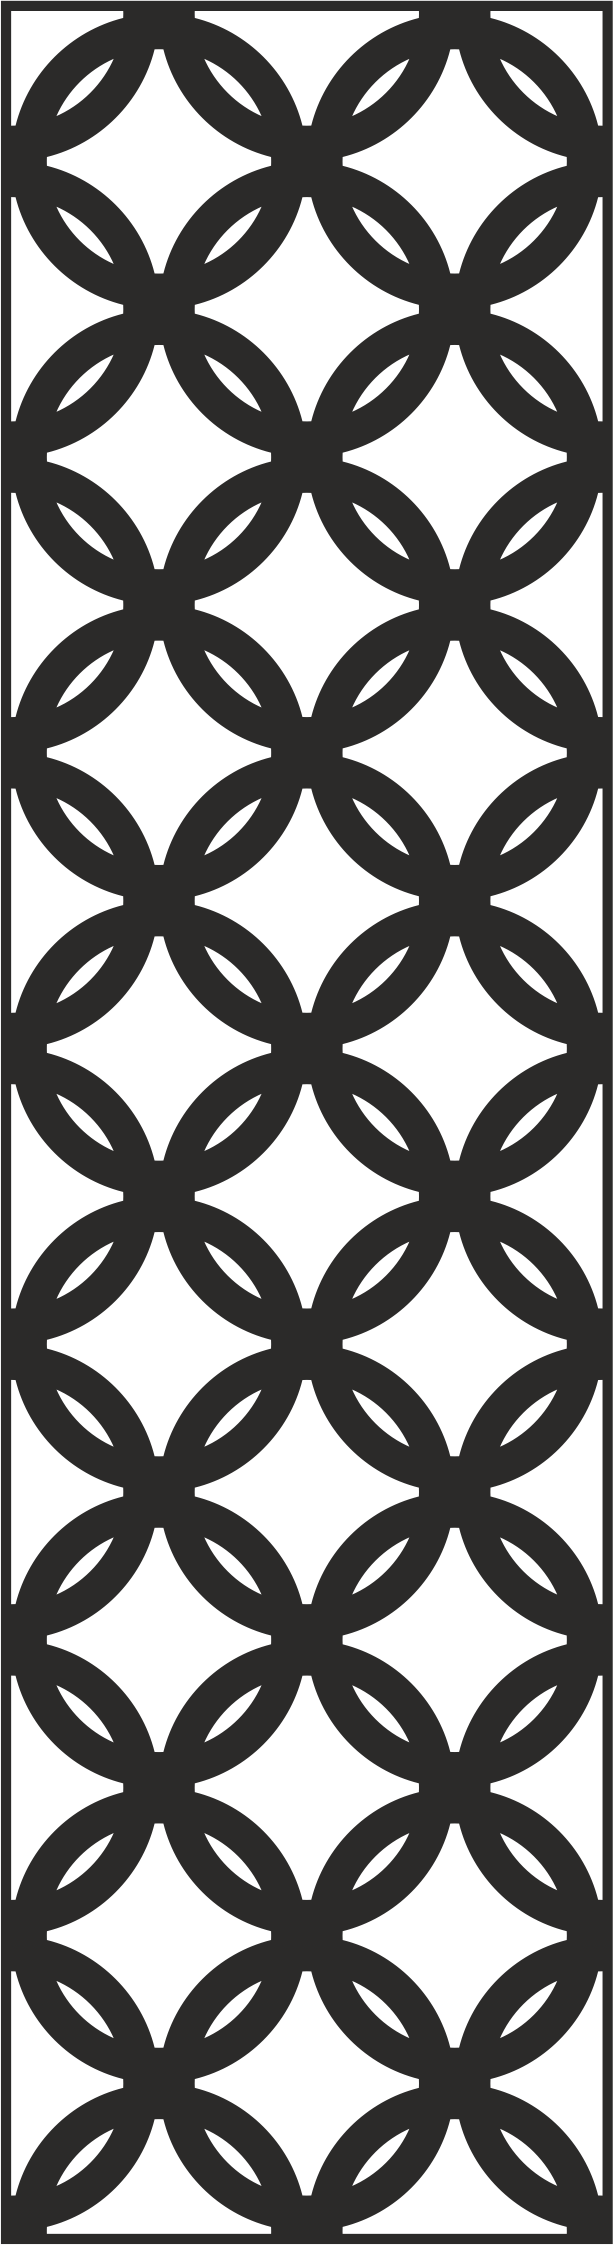 Laser Cut Metal Screen Pattern Vector Free Vector